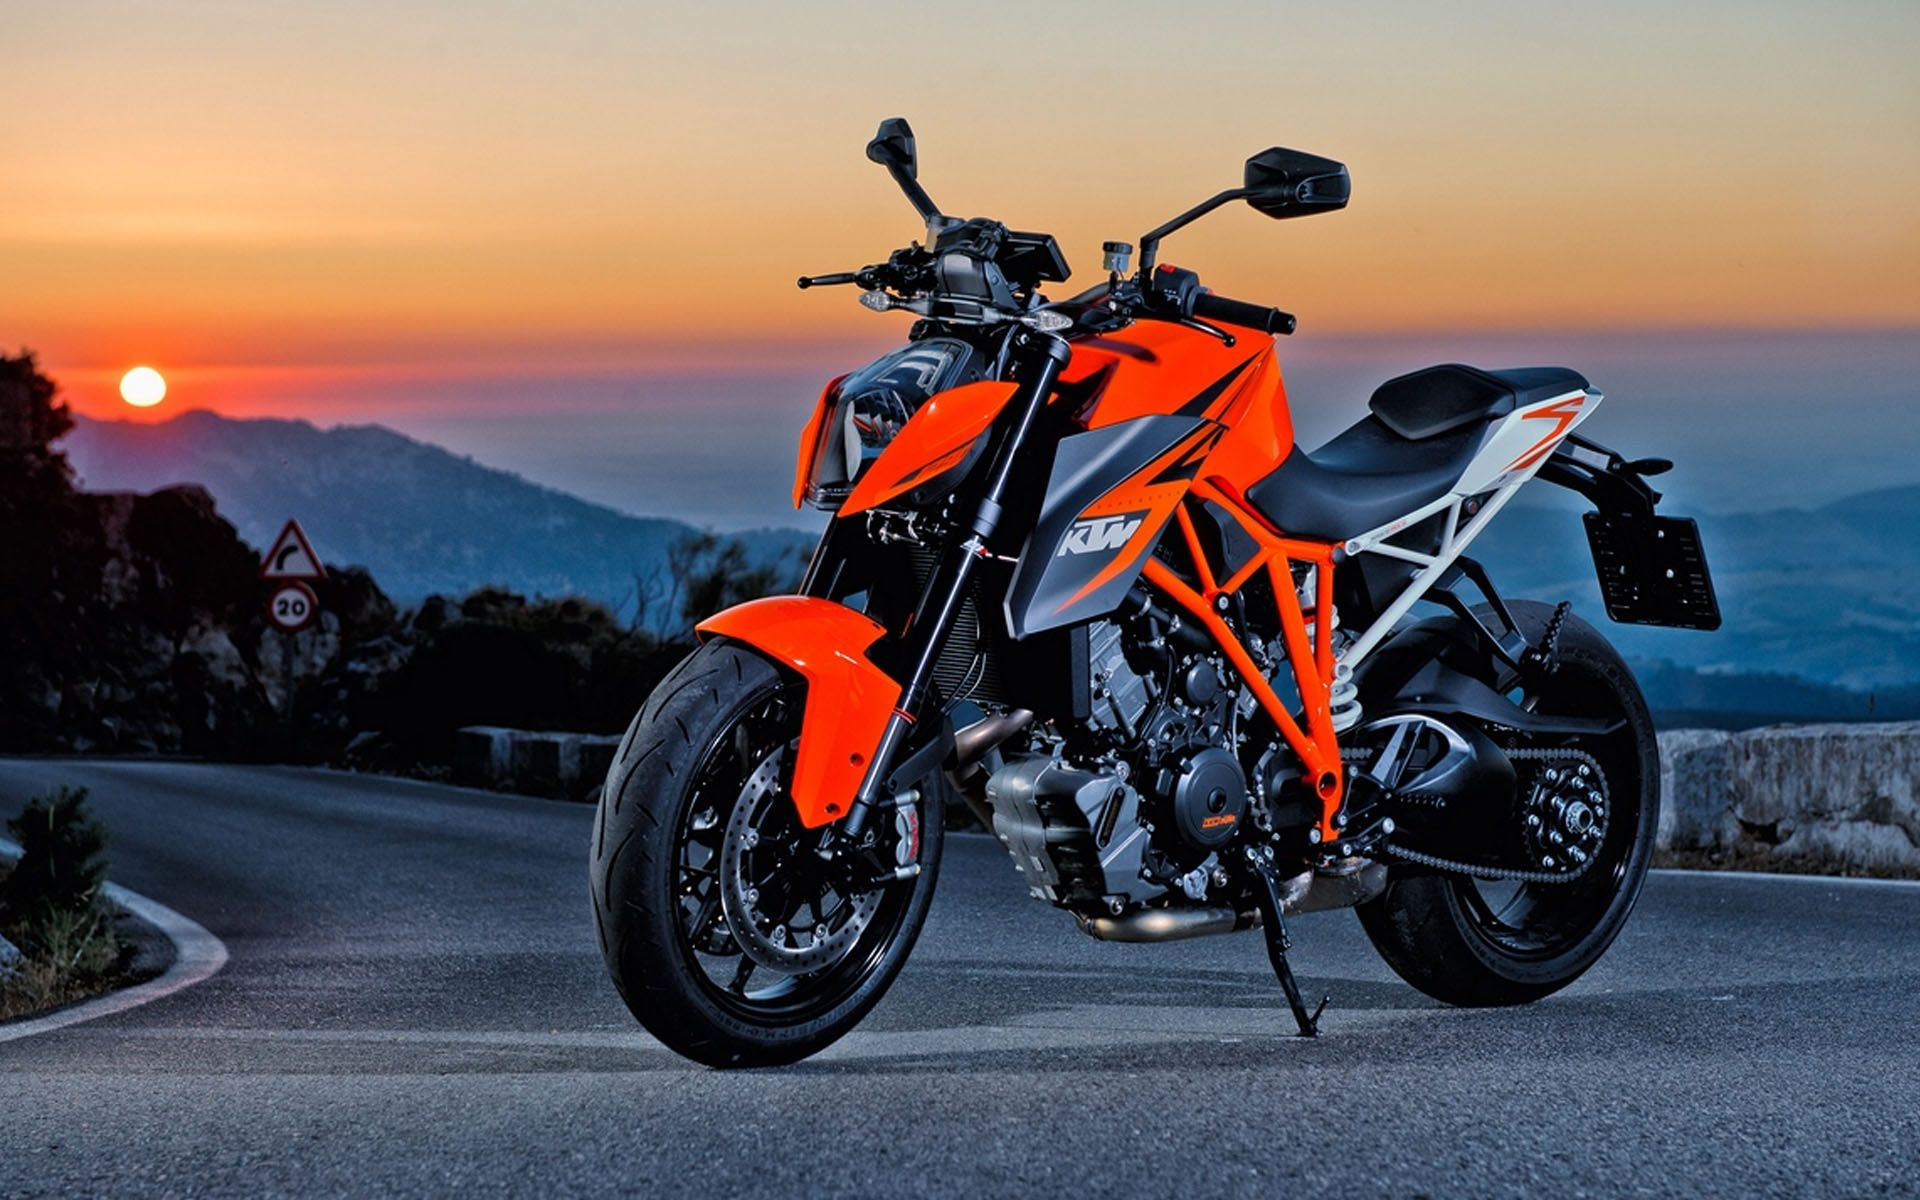 1290 Super Duke R Hd Wallpaper Ktm Super Duke Ktm Duke Bike